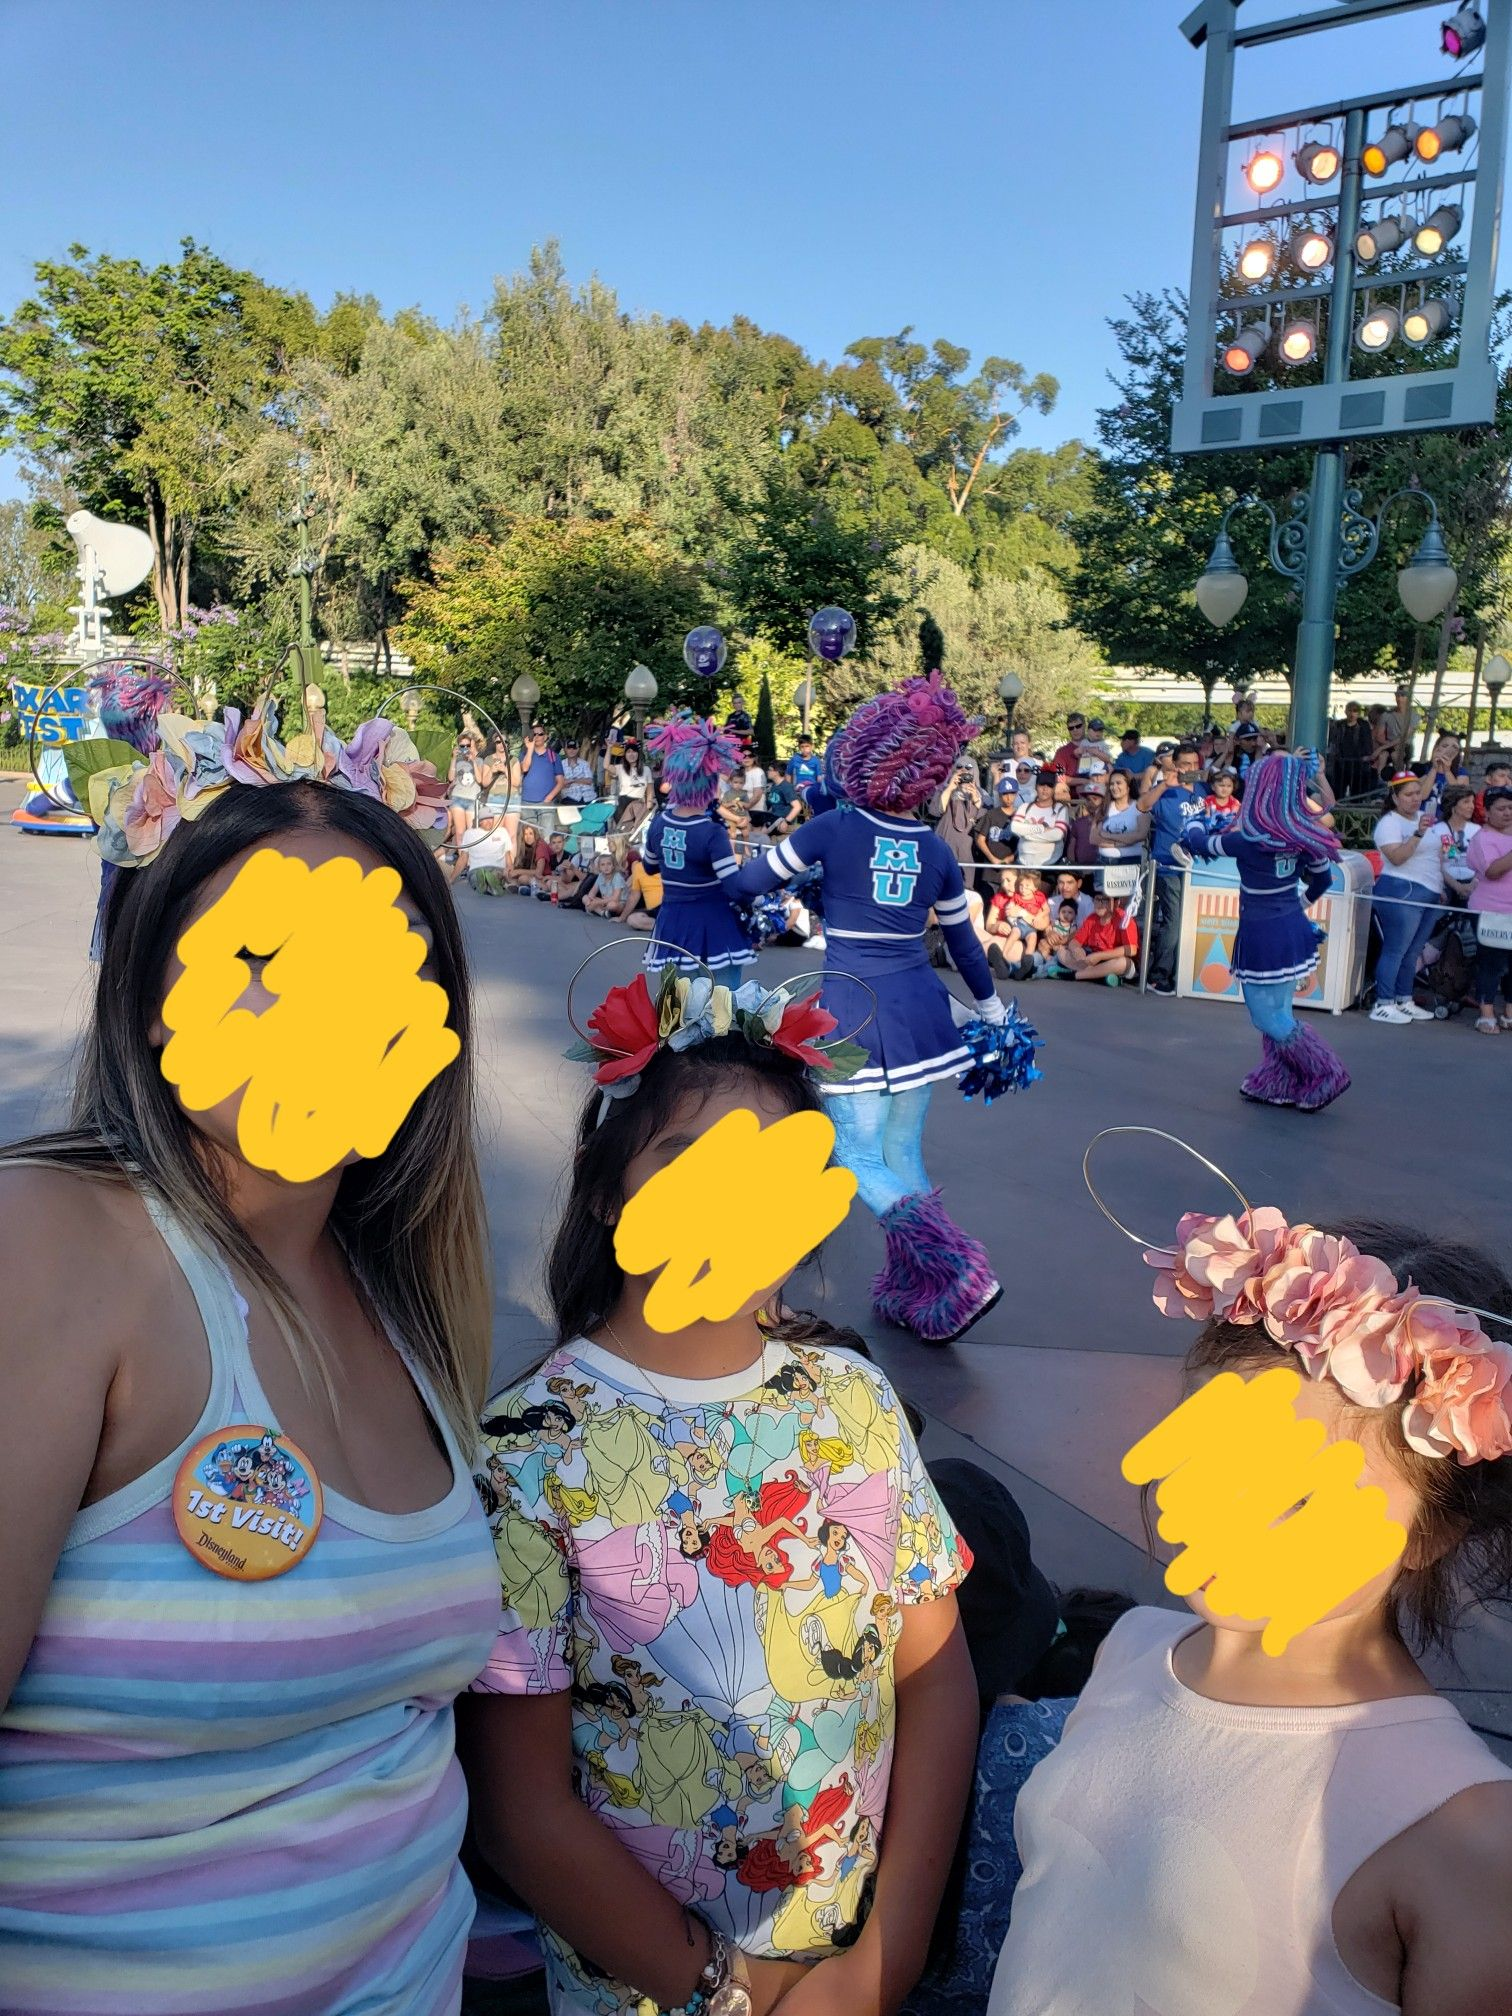 Check out Mickey ears